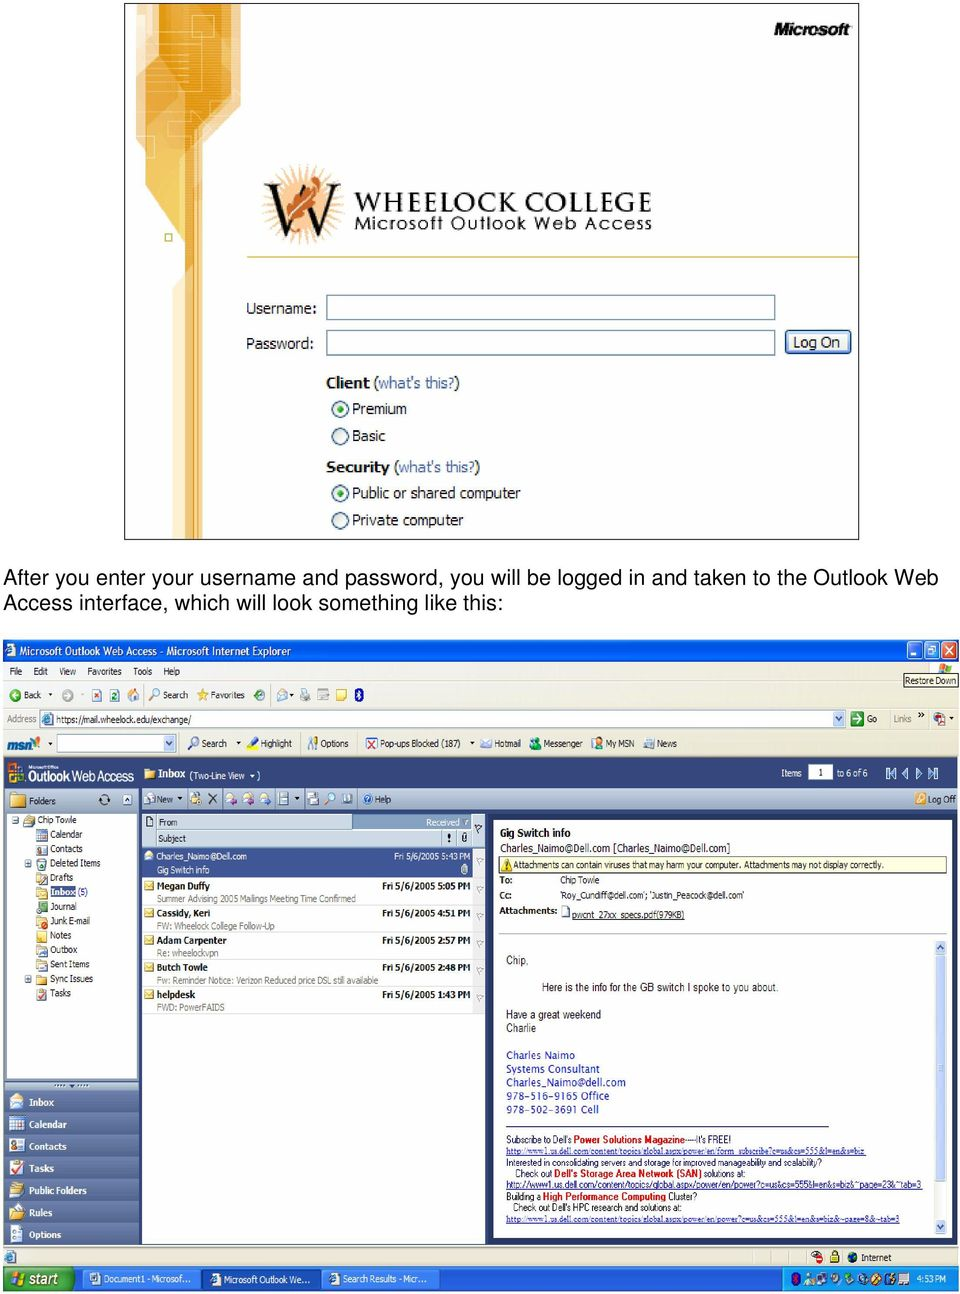 taken to the Outlook Web Access